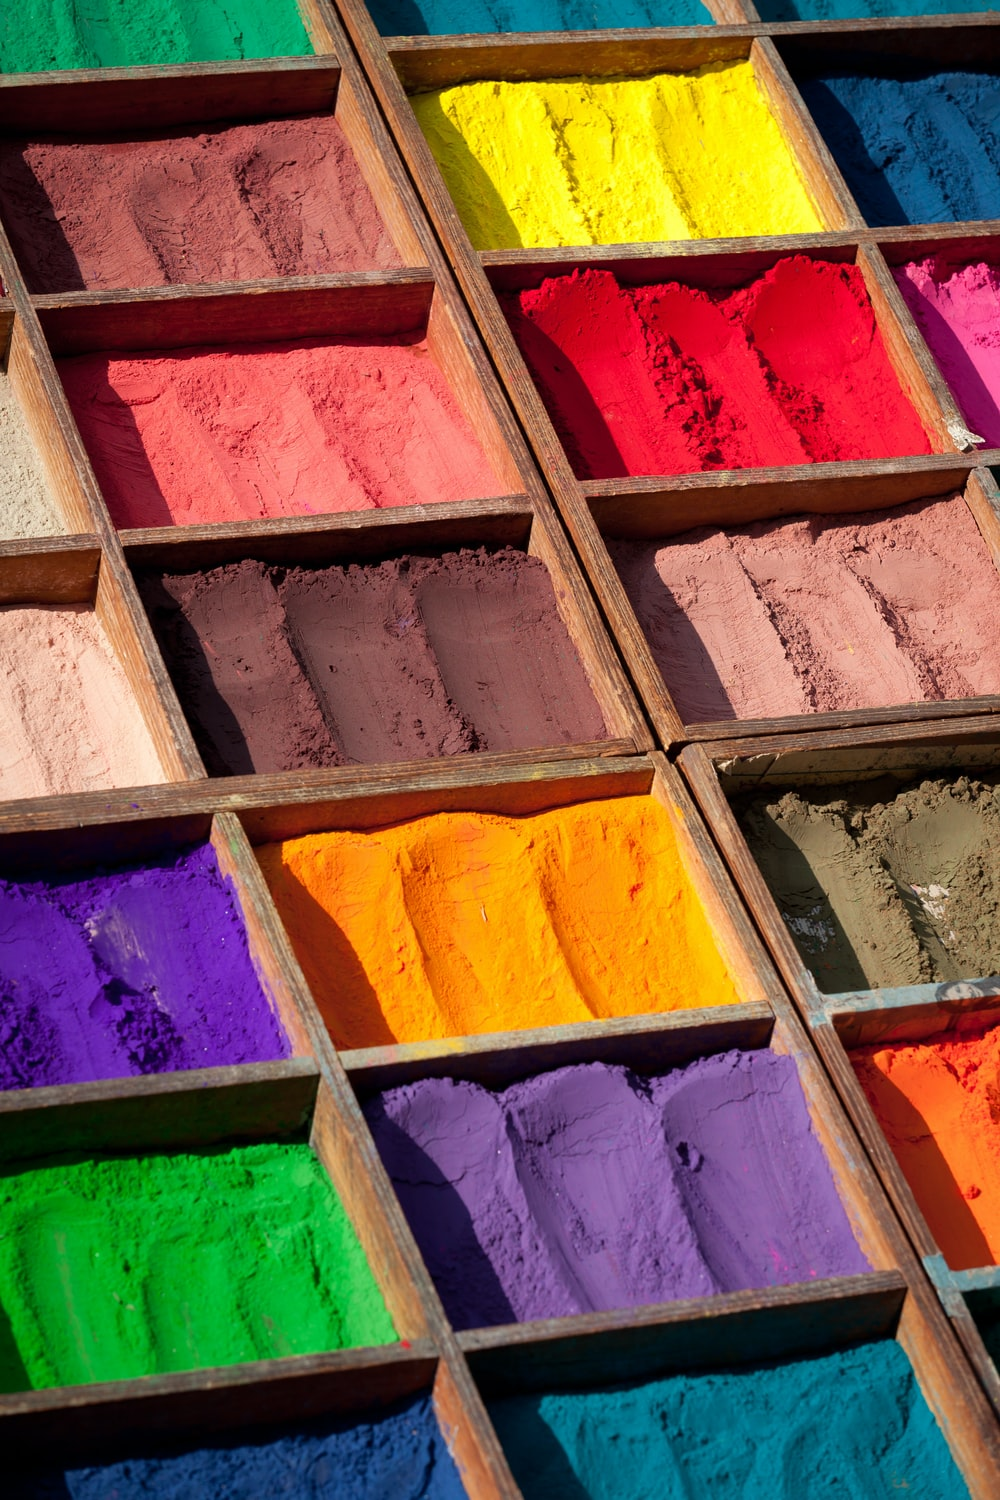 assorted-color powders